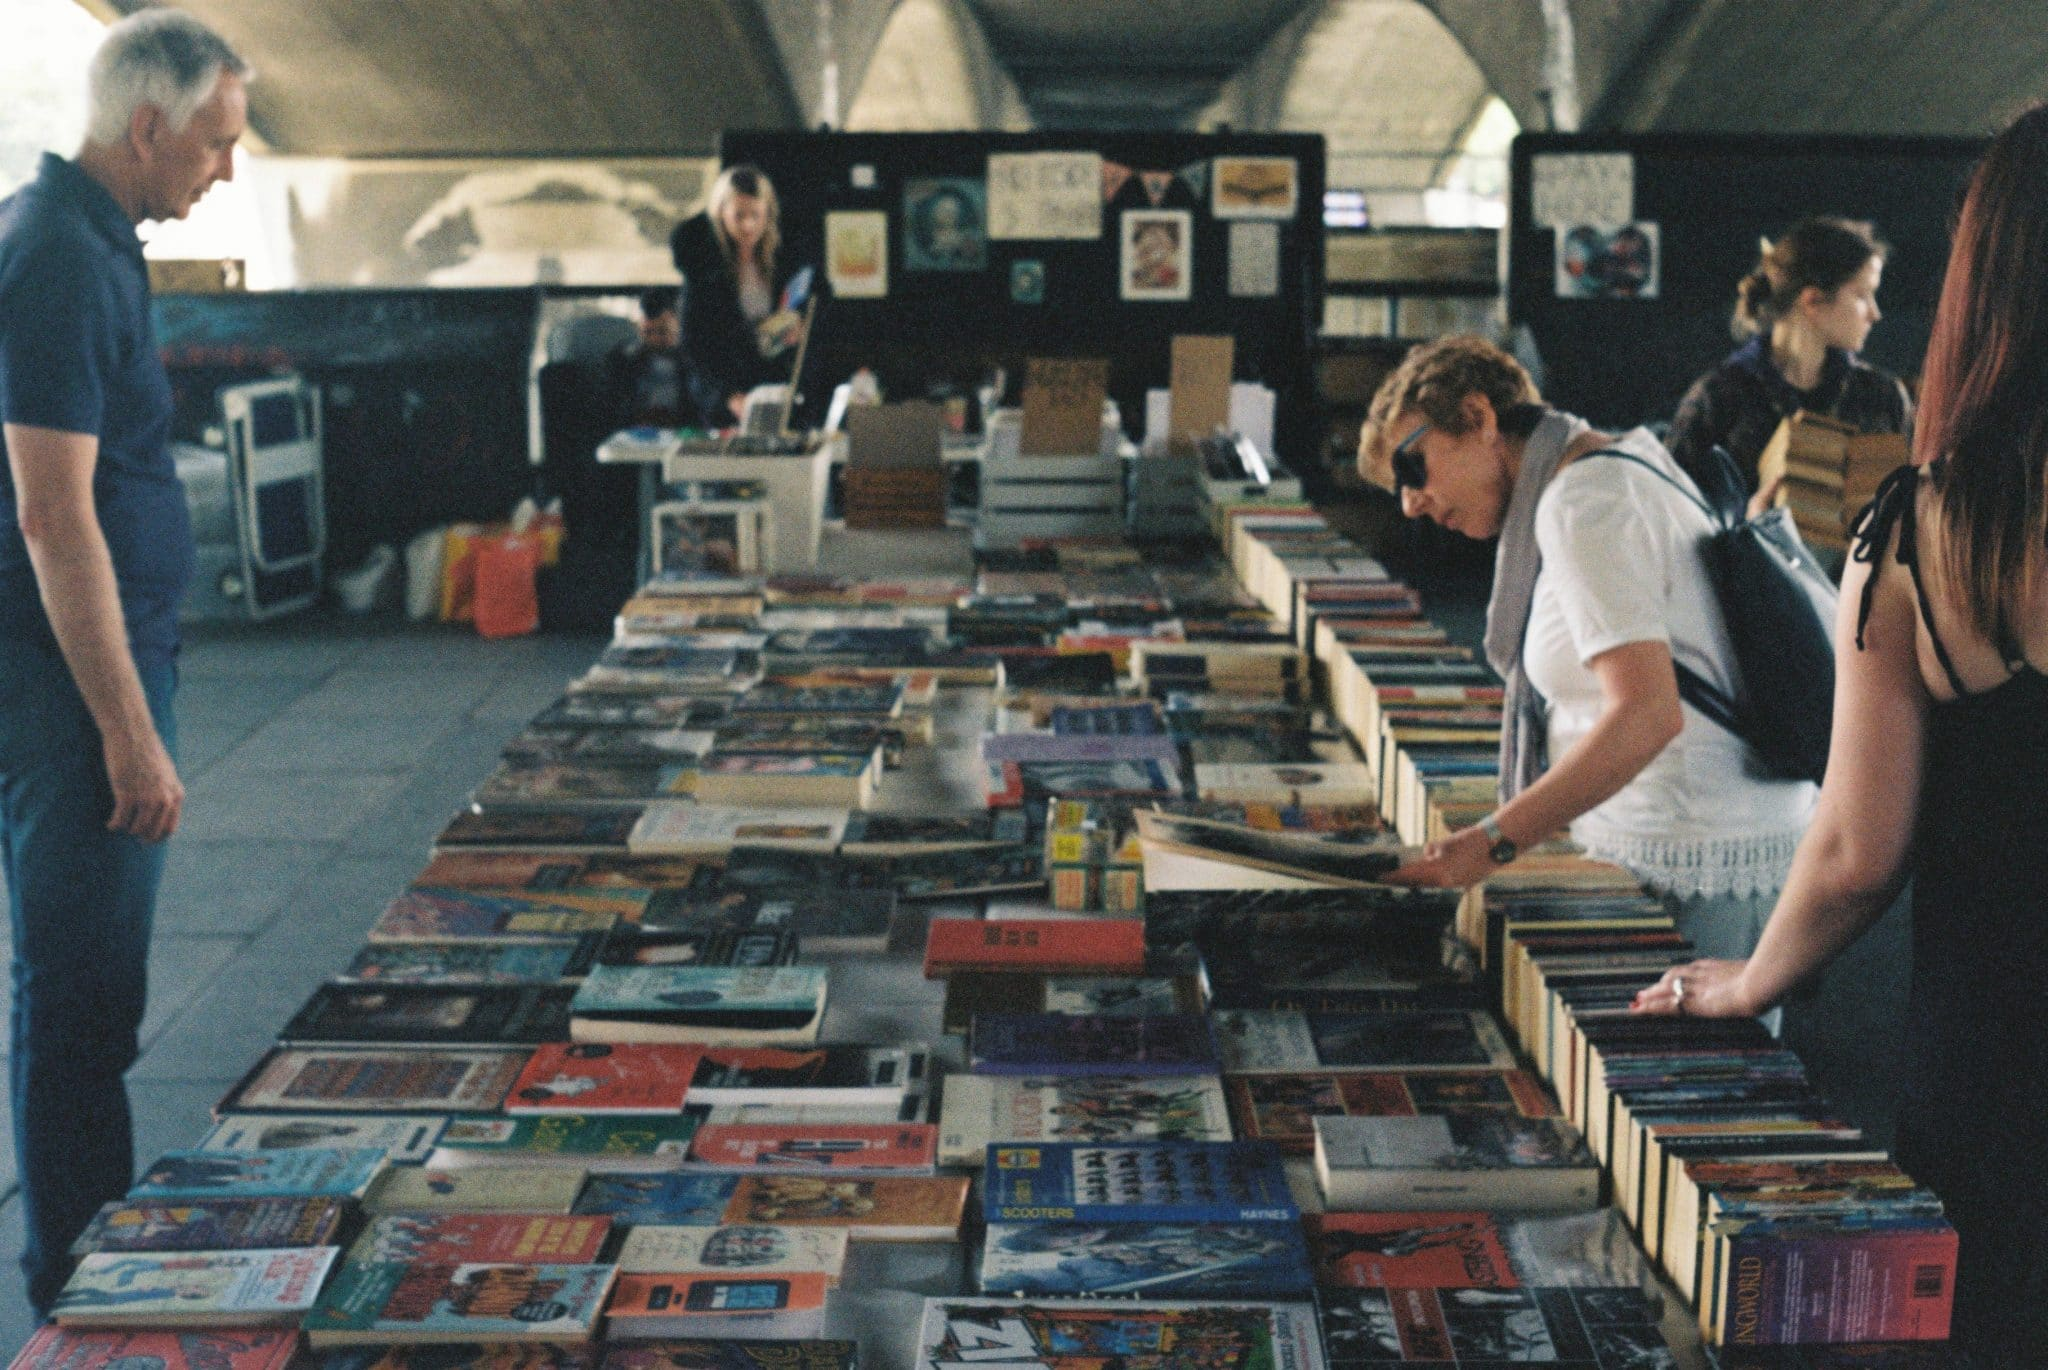 People shopping in a second-hand book store.